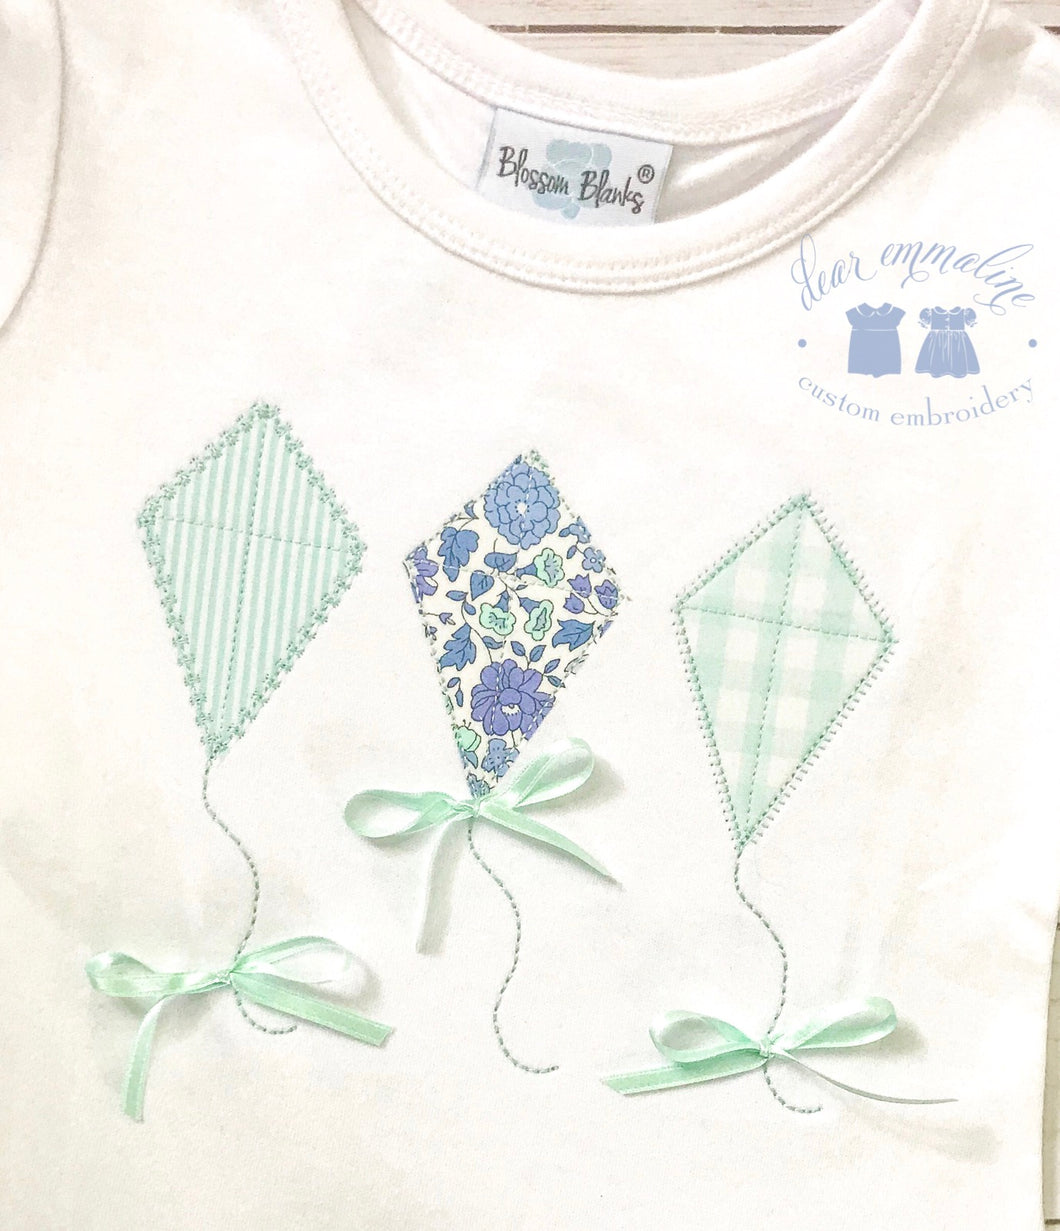 D'Anjo Liberty Kite Trio with Bows Shirt